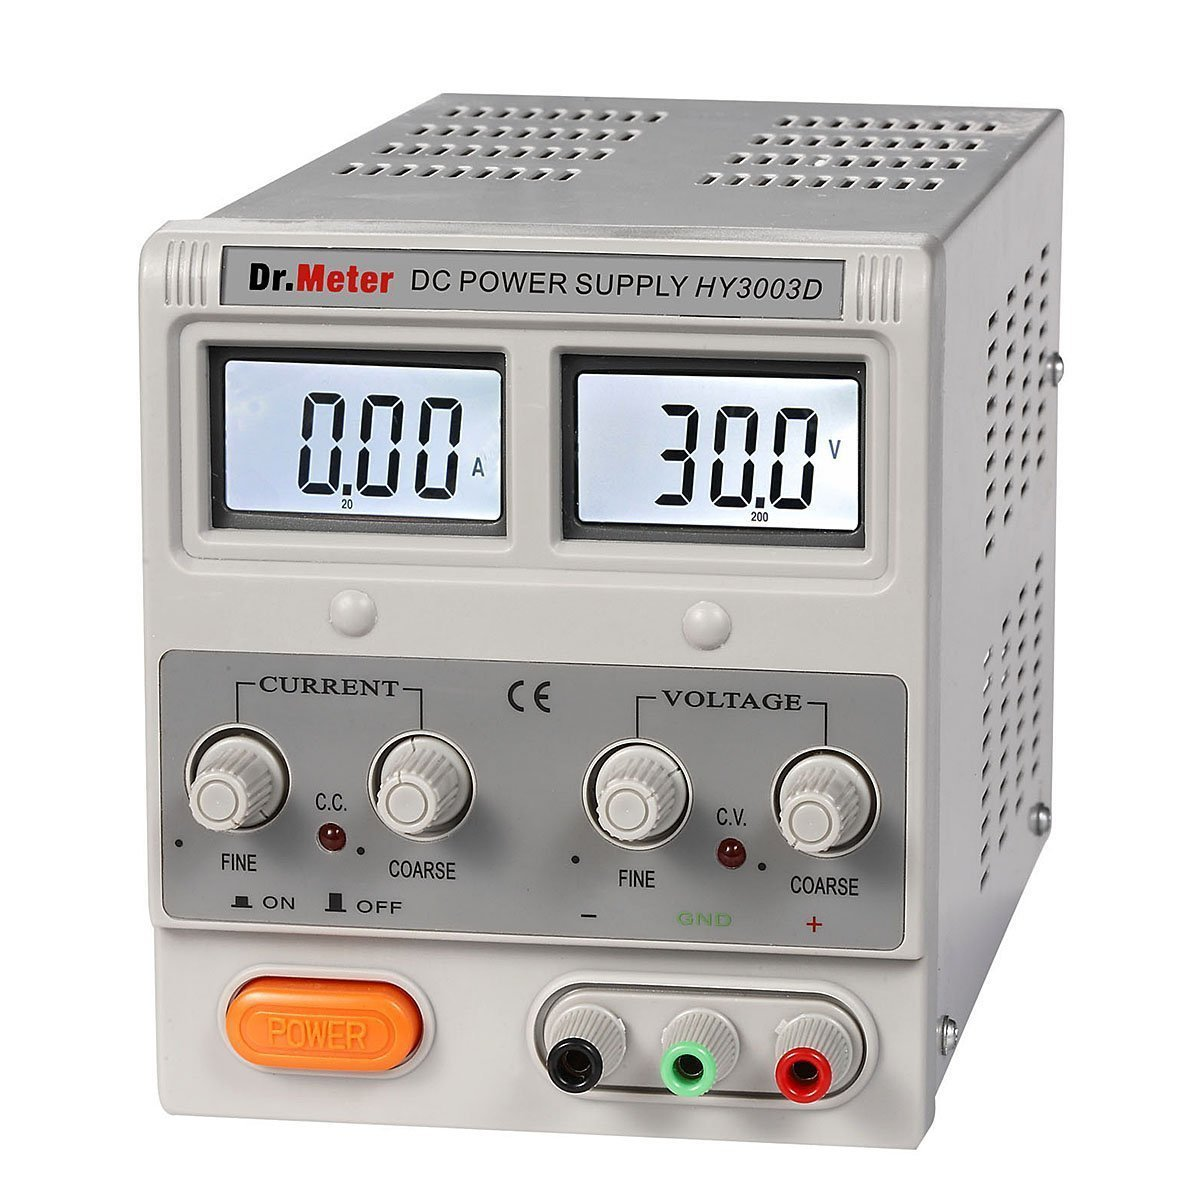 Drmeter Hy3003d 30v 3a Single Output Dc Power Supply Sound Level Meter Electronics Circuits For You With Banana To Alligator Cable Home Audio Theater